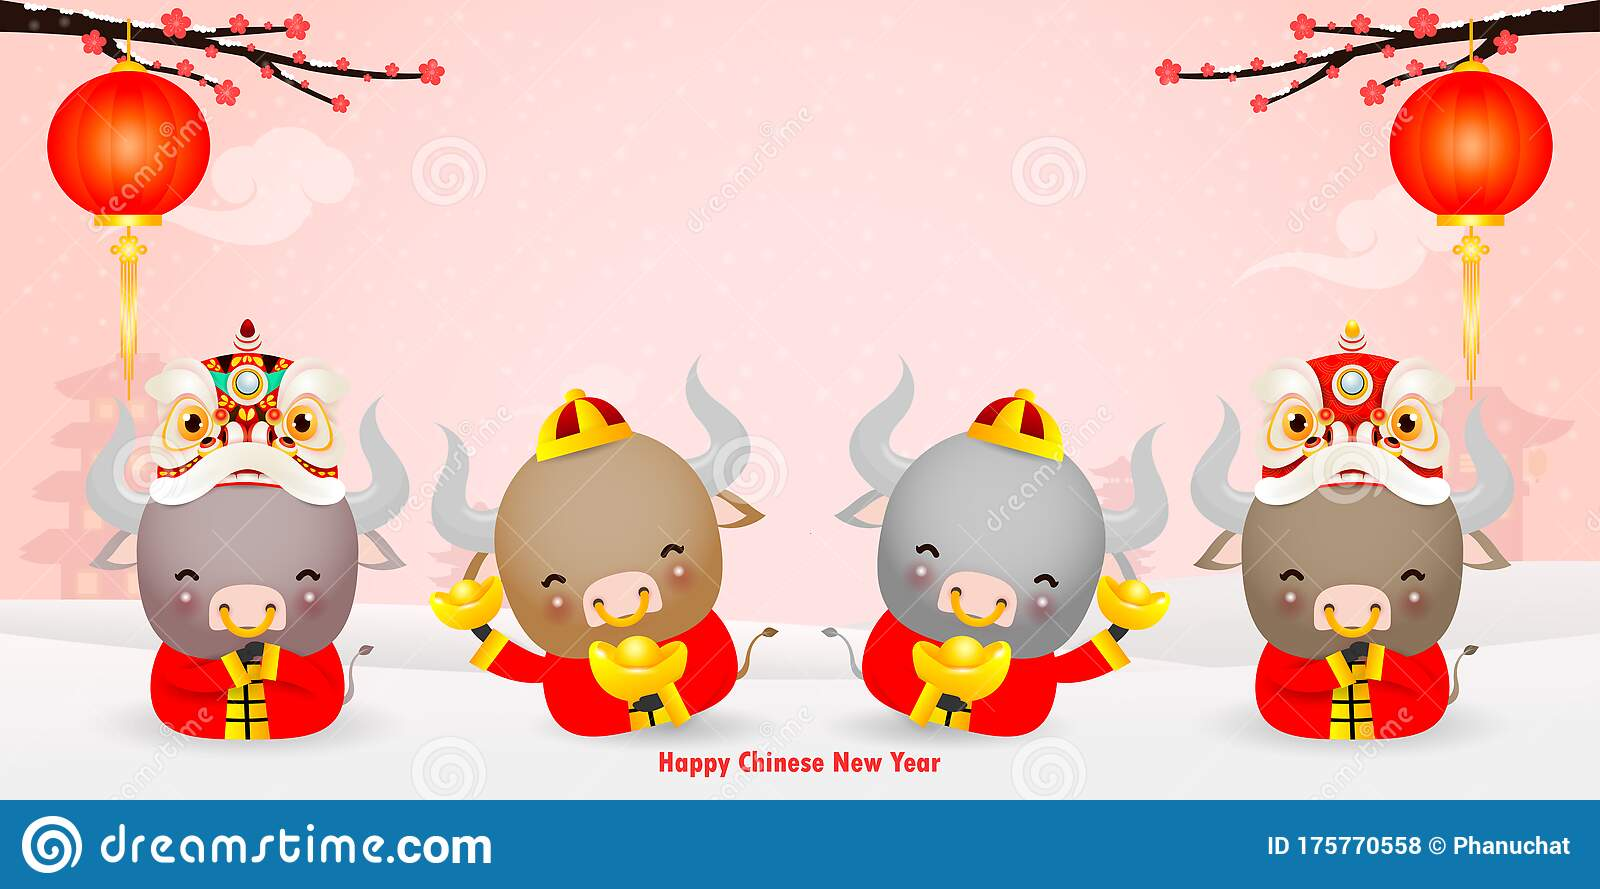 Happy Chinese New Year 2021 Greeting Card. Group Of Little ...